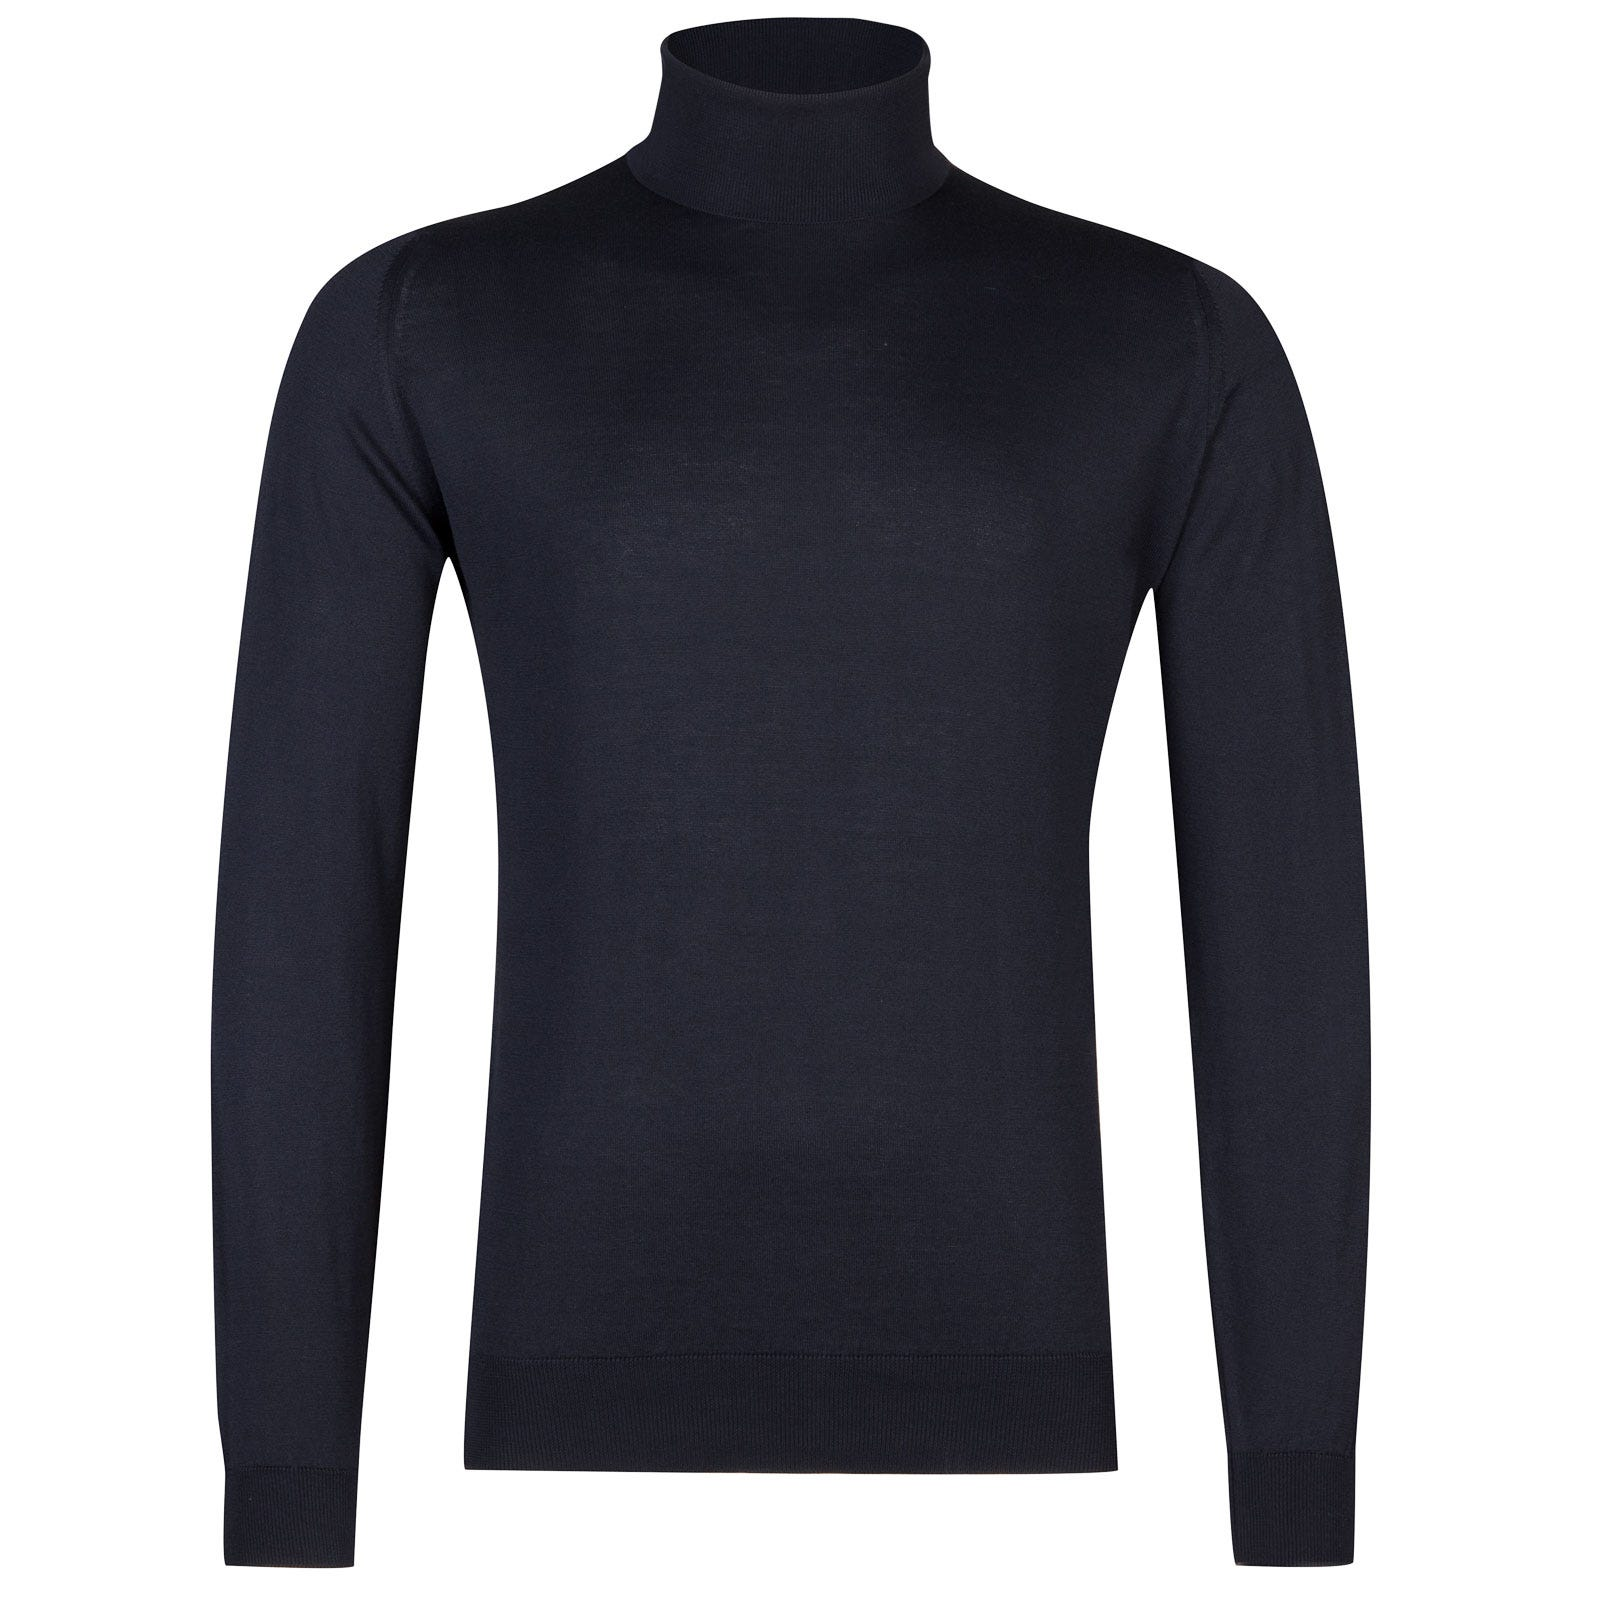 John Smedley Hawley Sea Island Cotton Pullover in Navy-M